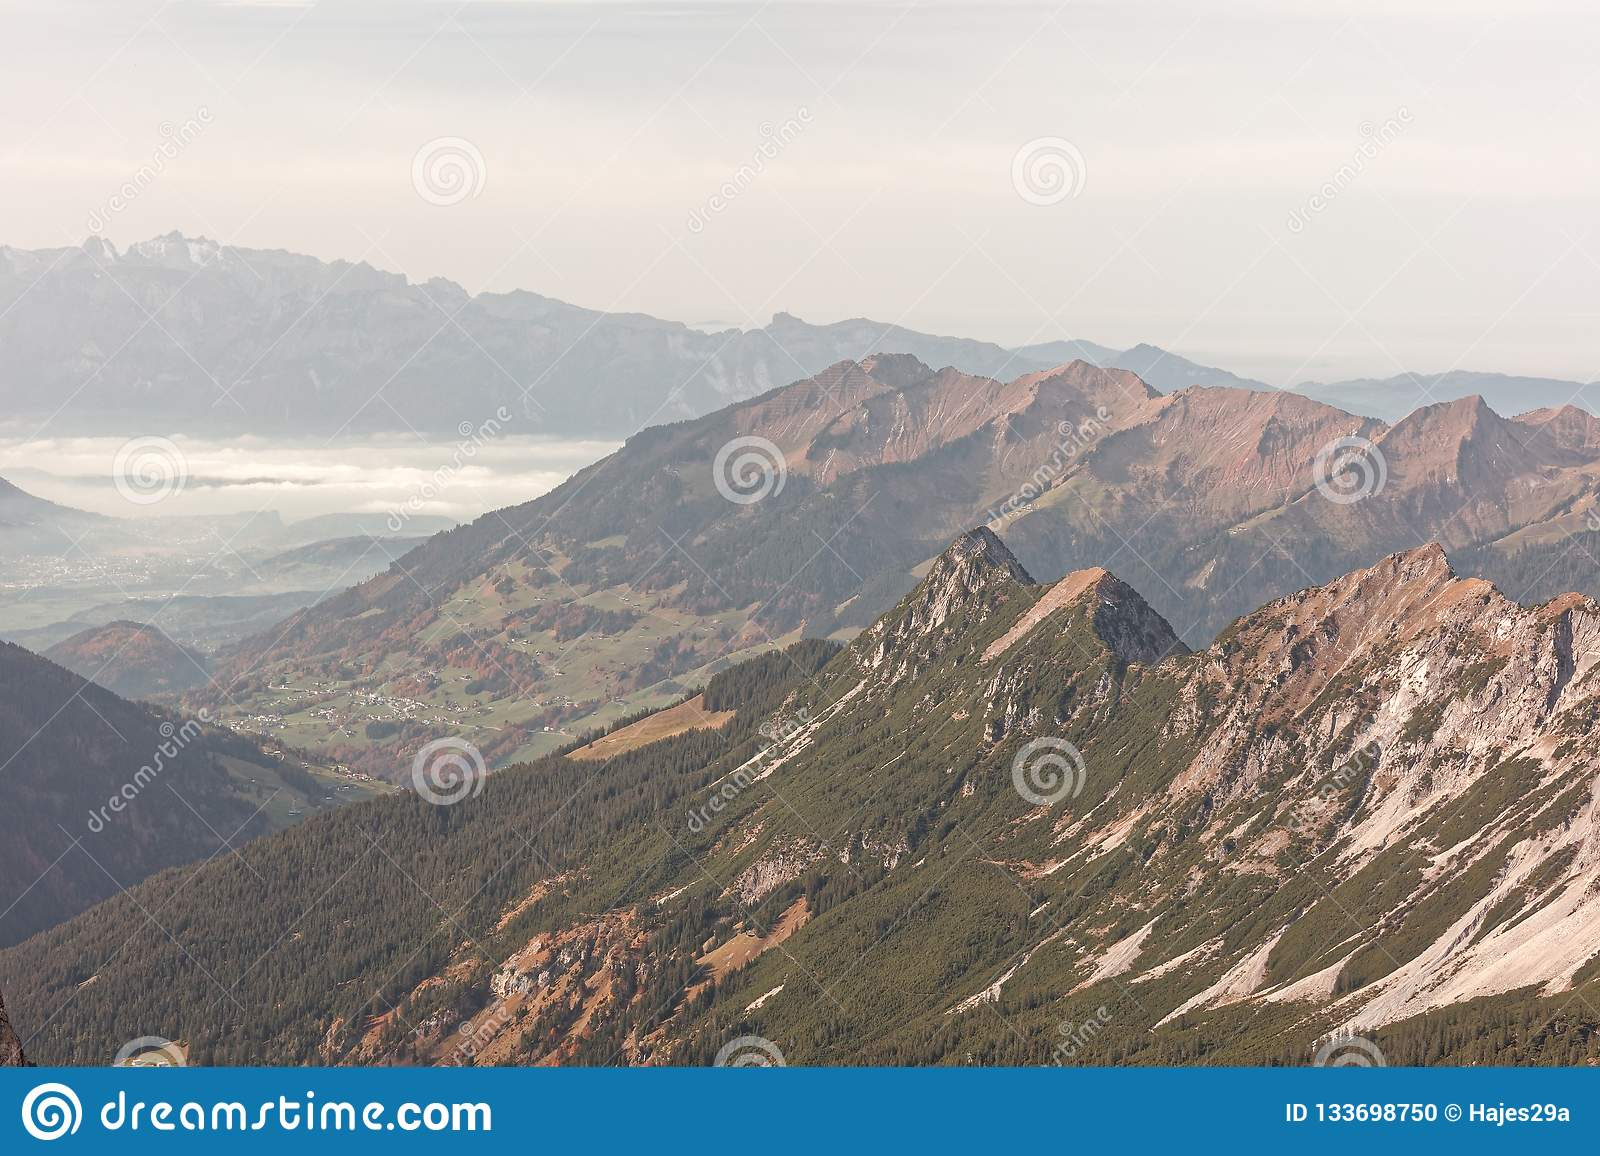 Rote Wand Views From Rote Wand Stock Photo Image Of Mountain 133698750